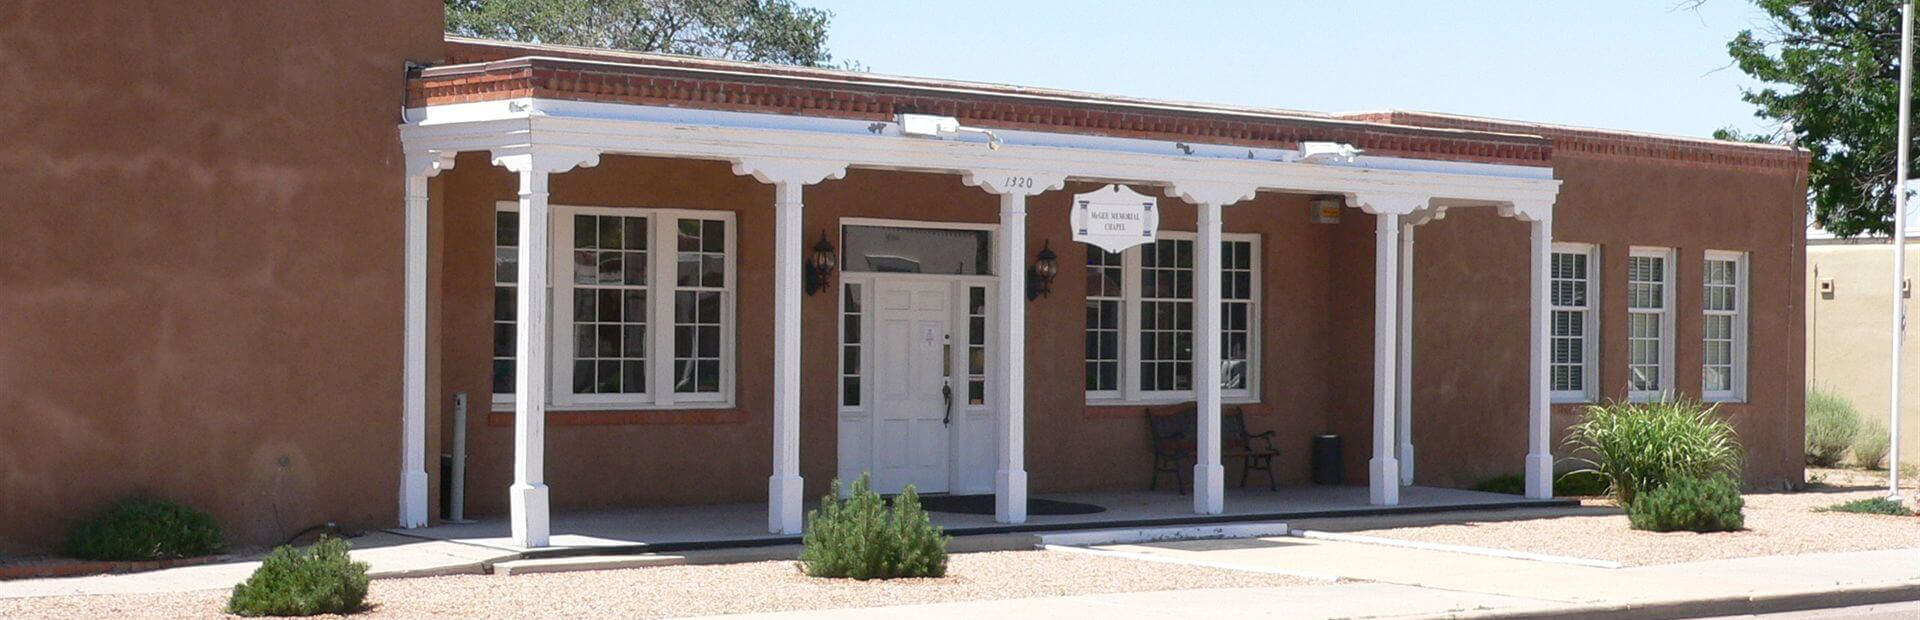 McGee Memorial Chapel Mortuary in Santa Fe, NM